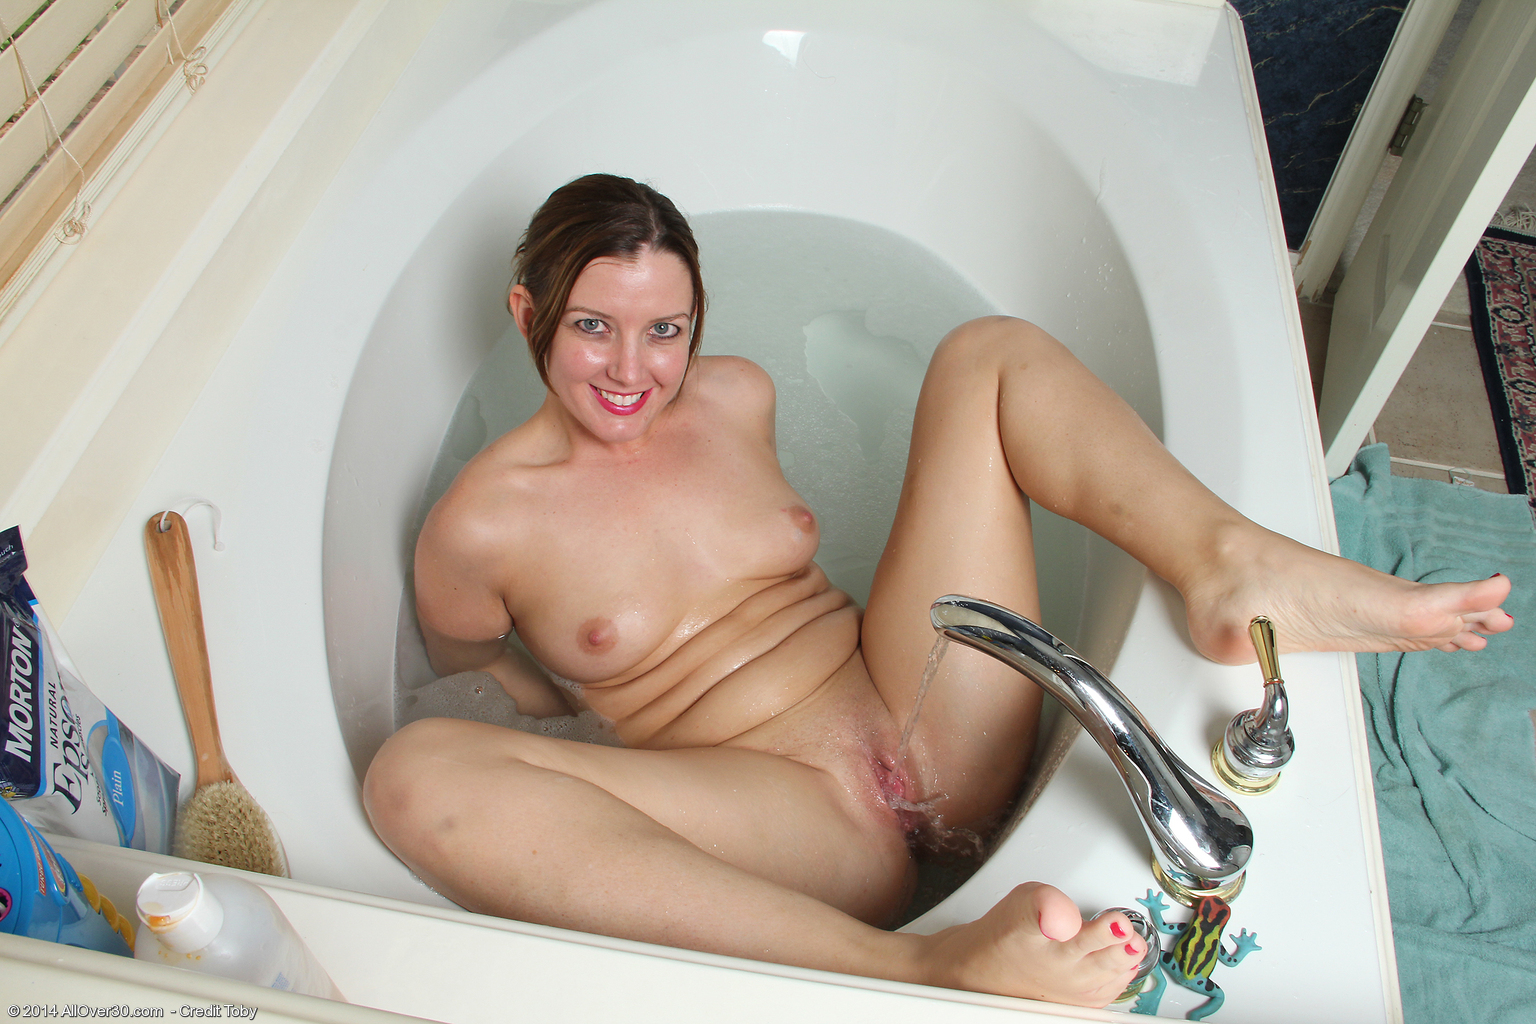 Sally mature all over 30